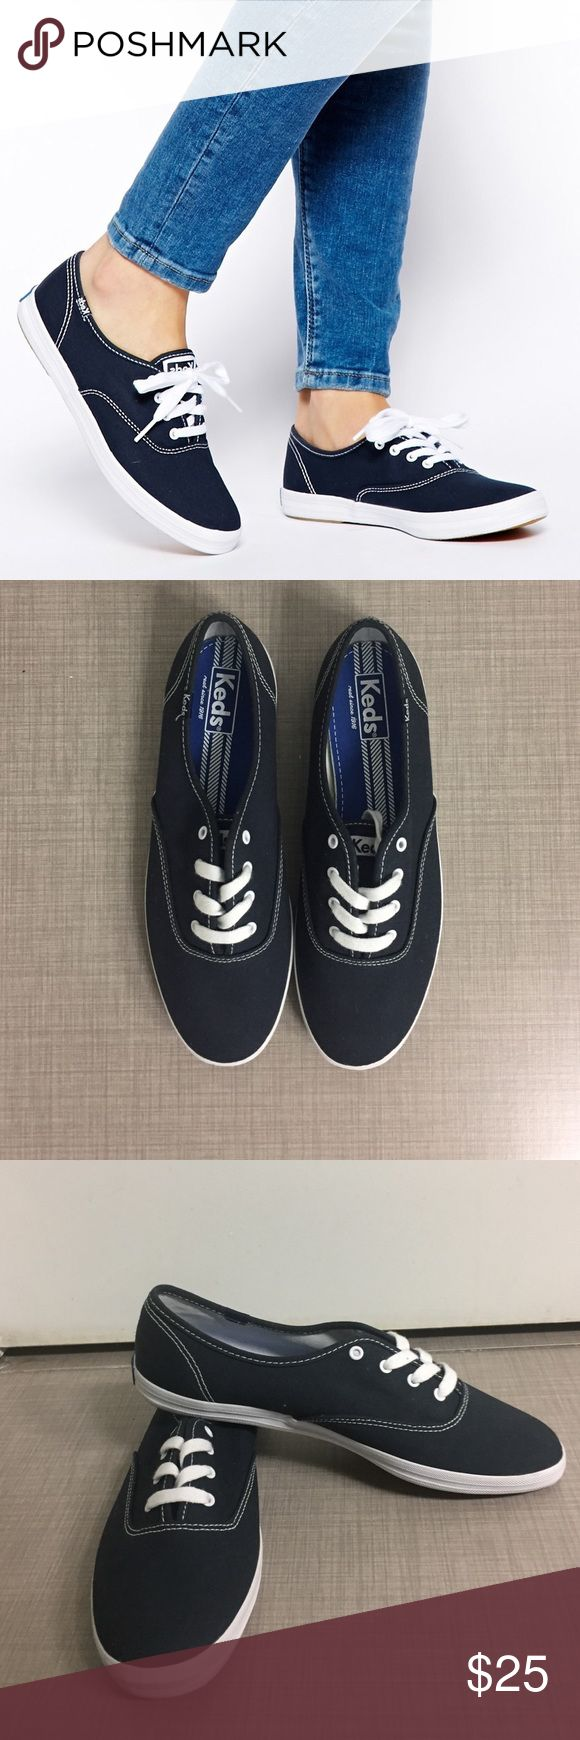 NEW Keds Champion Oxford Sneaker -- Navy NEW, never worn. A sporty classic that will never go out of style. Navy with white accents. Box not included. (Laces are tucked inside of shoes for photographic purposes.) Keds Shoes Sneakers